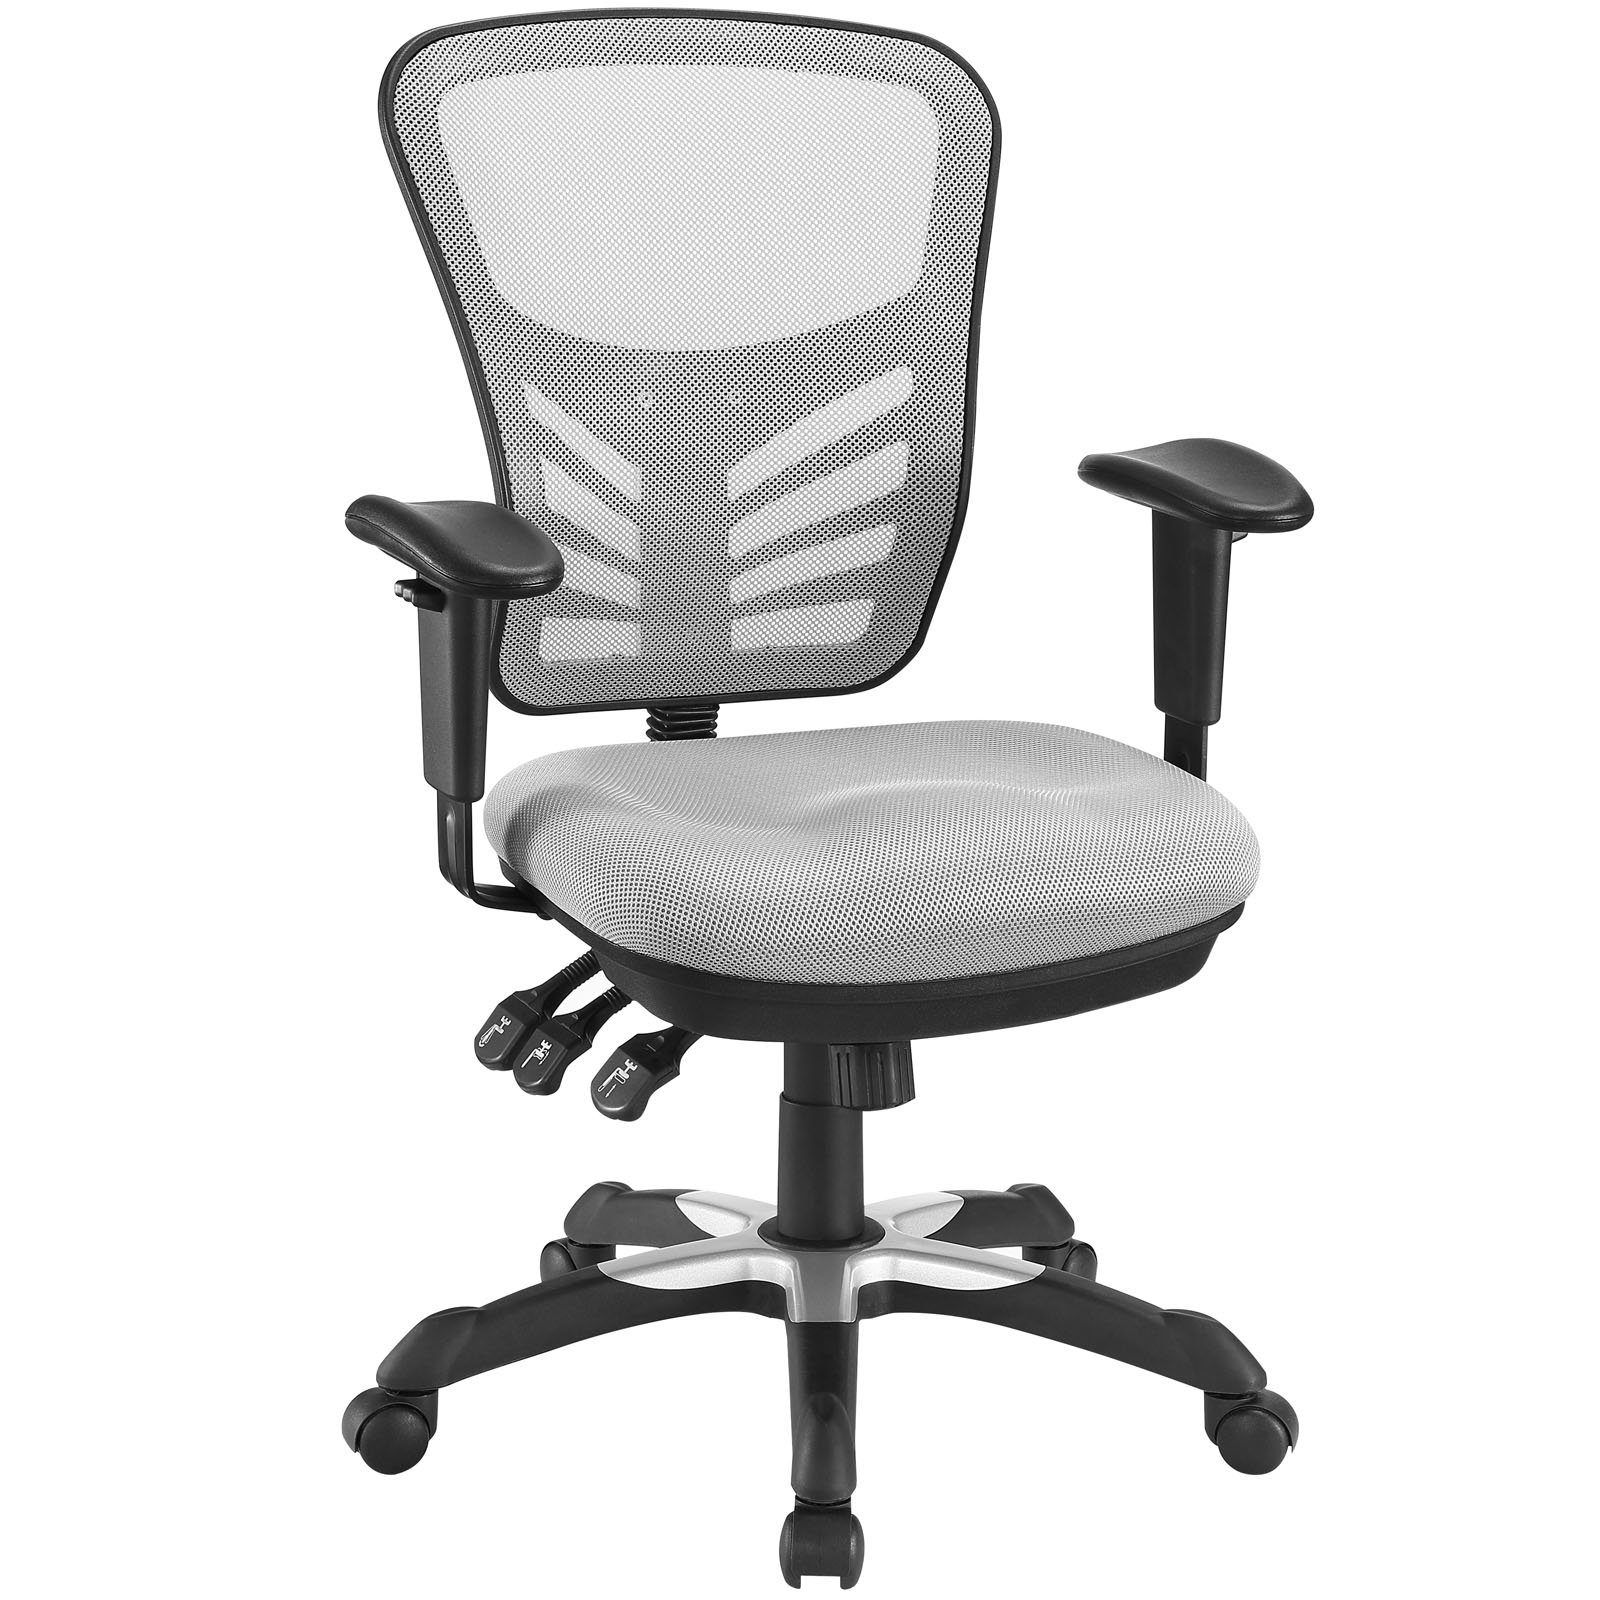 Modway Articulate Ergonomic Mesh Office Chair in Gray by Modway (Image #1)